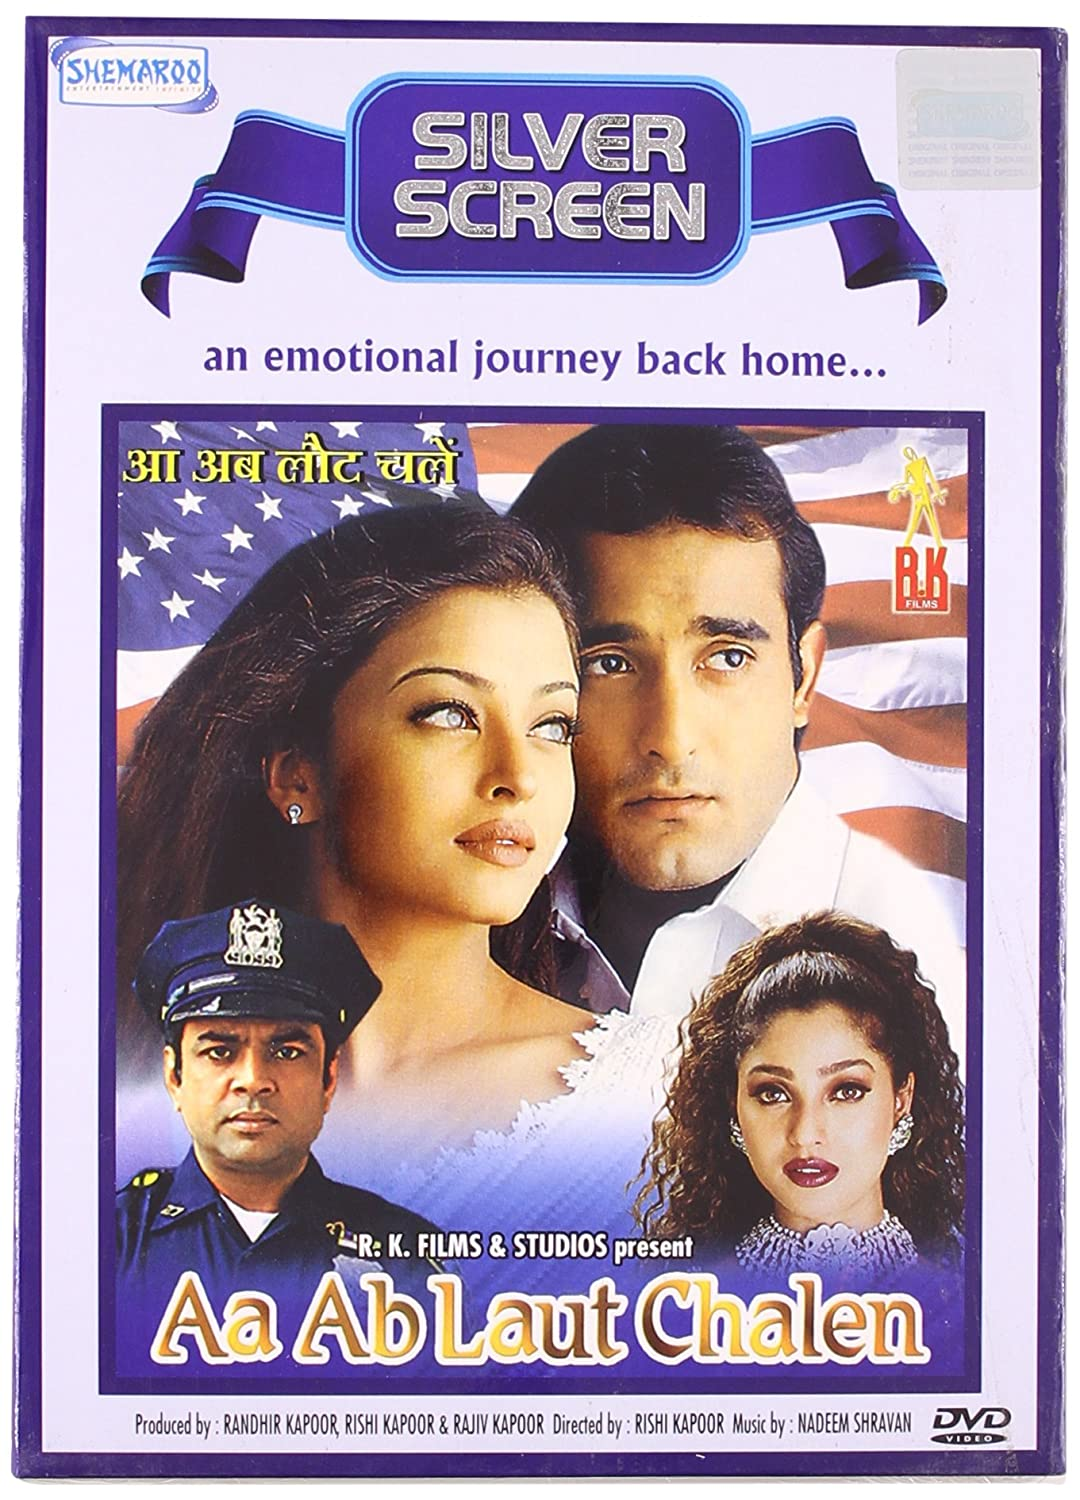 Amazonin Buy Aa Ab Laut Chalen DVD Blu Ray Online At Best Prices In India